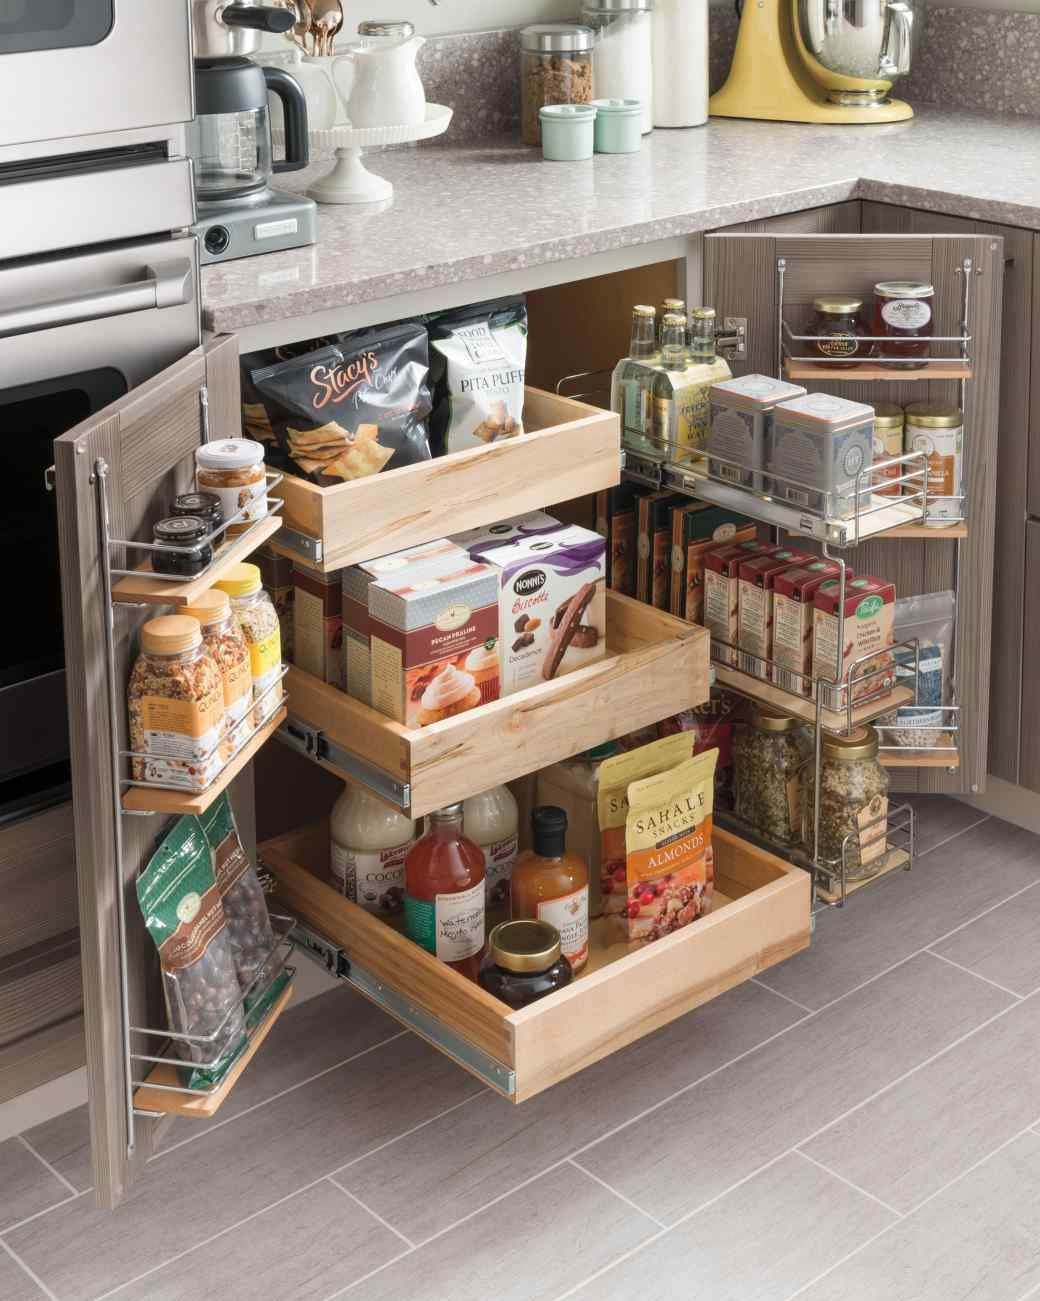 Small Kitchen Es Can Be Tough To Keep Organized But Don T Let A Cramped E Get You Down These Storage Ideas Will Help Maximize Your And